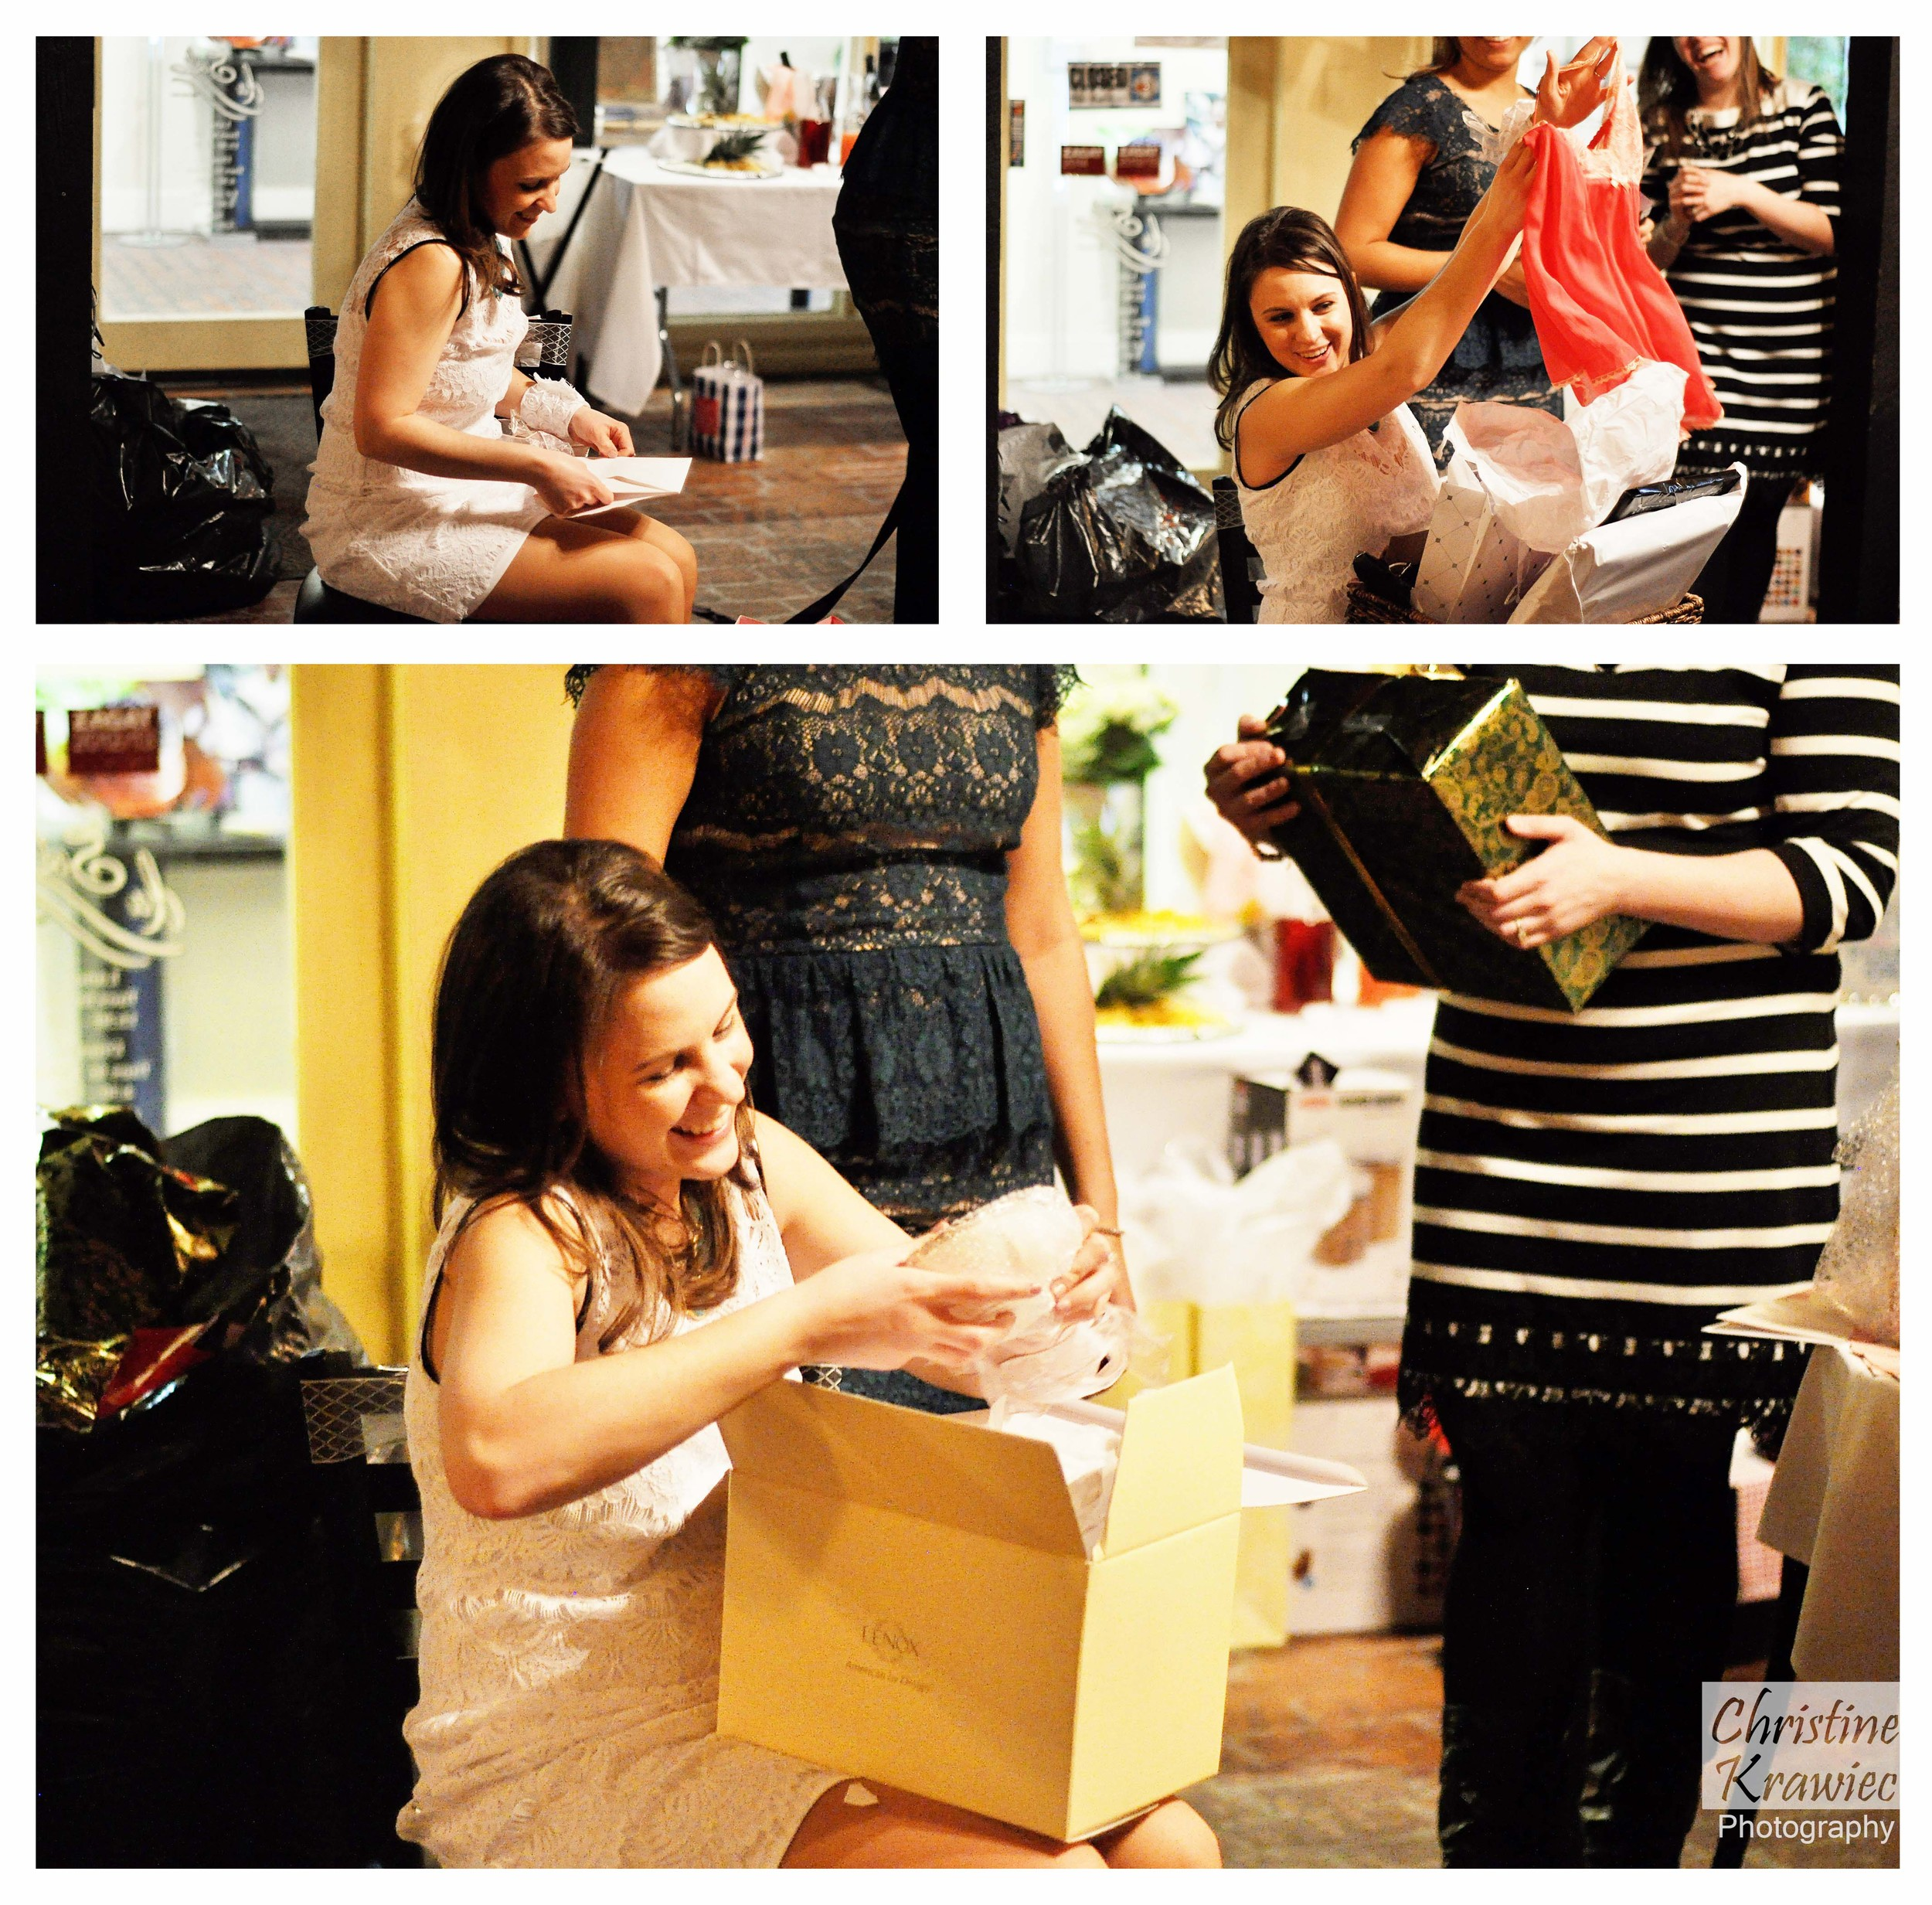 Christine Krawiec Photography - Haddonfield Bridal Shower Photographer